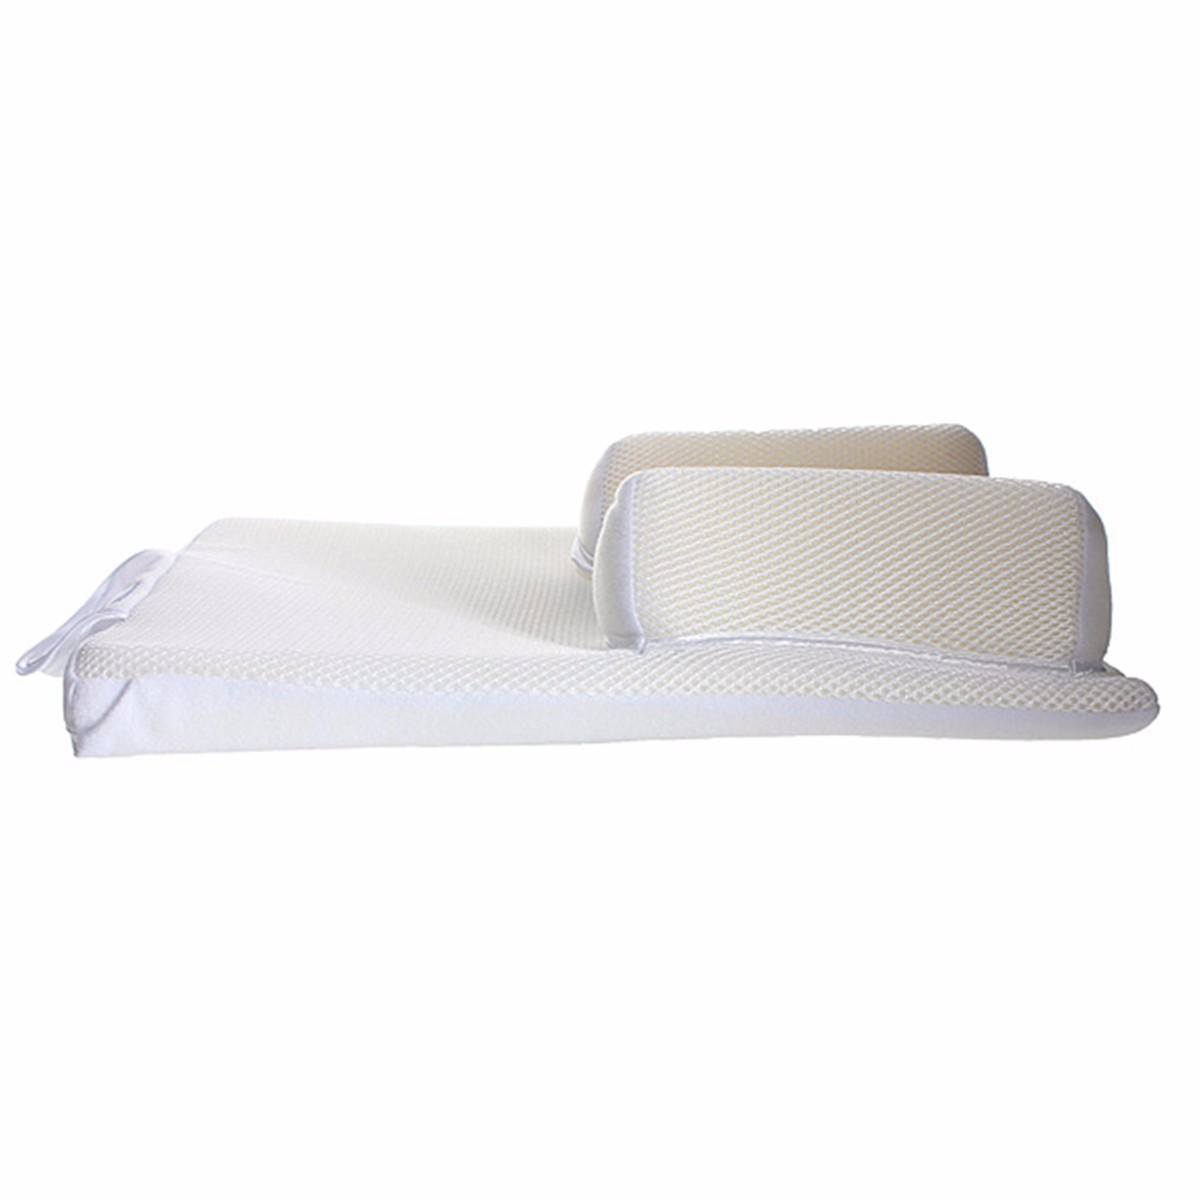 Baby Care Infant Anti Roll Pillow With Ultimate Fixed Vent And Sleep Positioner To Prevent Flat Head 4